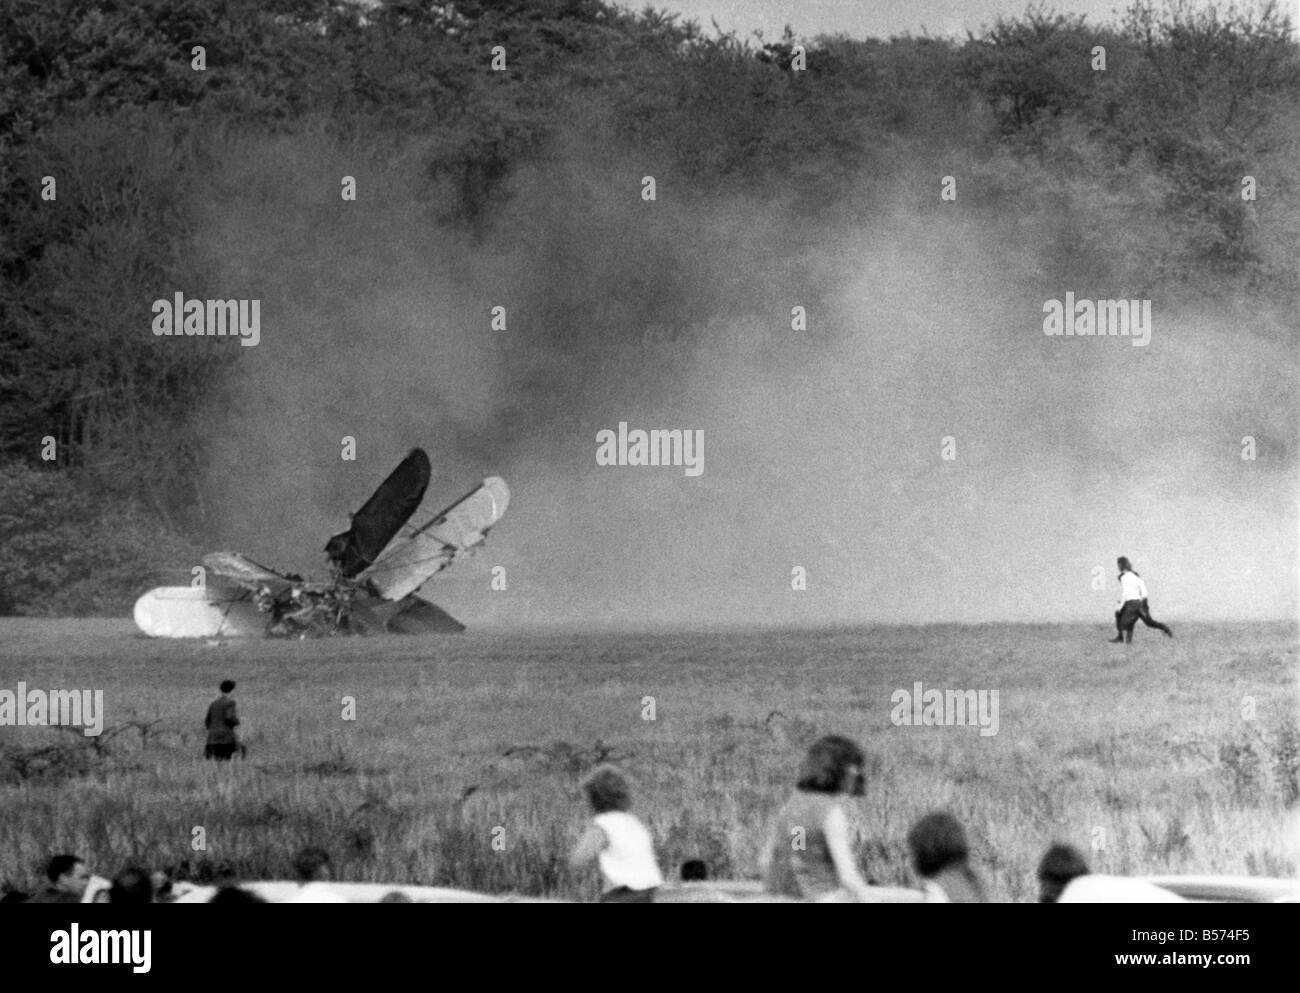 Crash ends an Ace's Air Spectacular: A spectacular aerobatic display ended last Sunday (16-5-65) in a spectacular - Stock Image